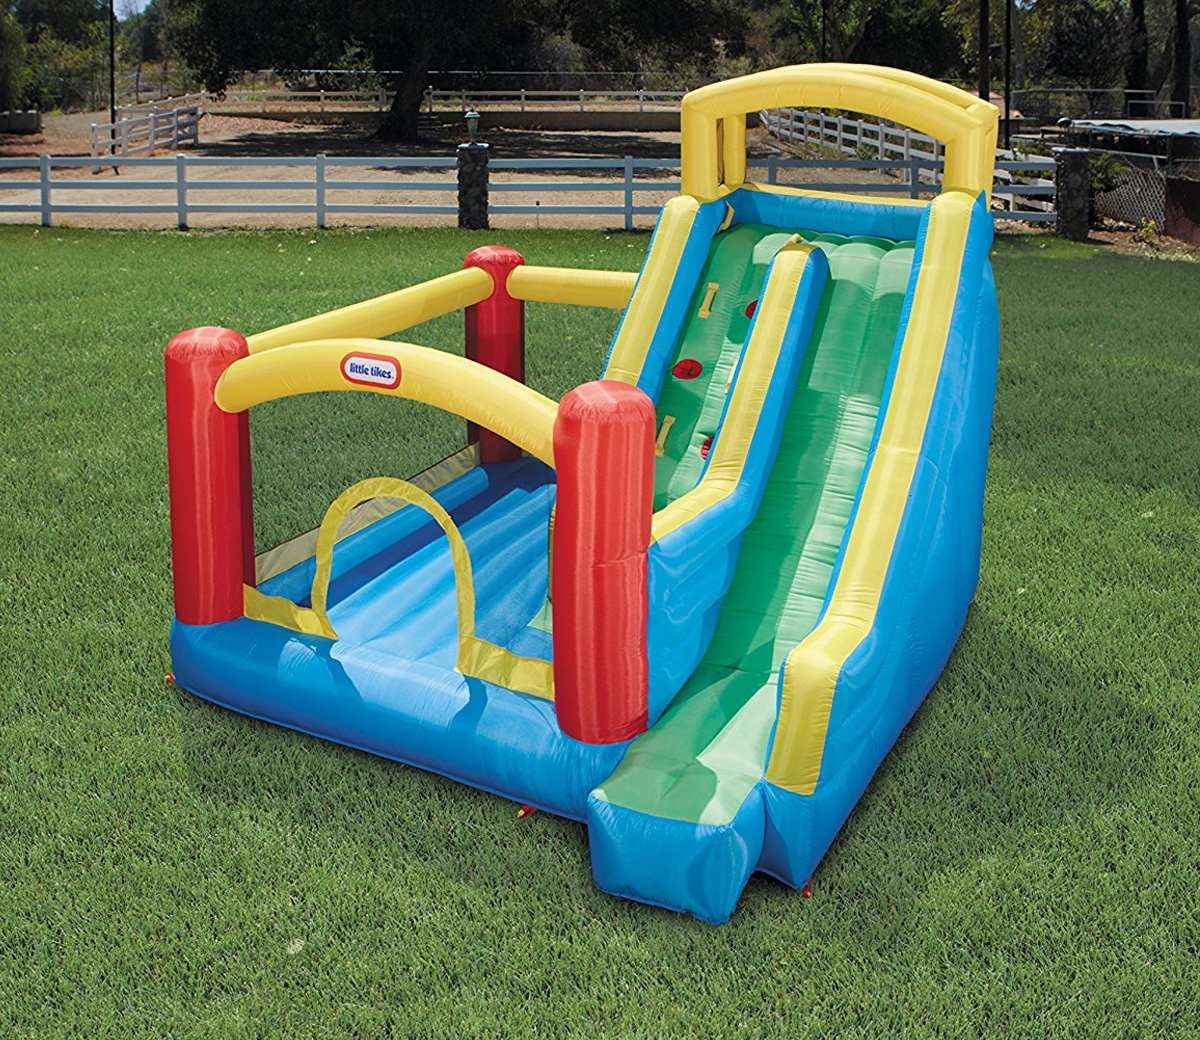 Find great deals on eBay for little tikes giant slide bouncer. Shop with confidence.